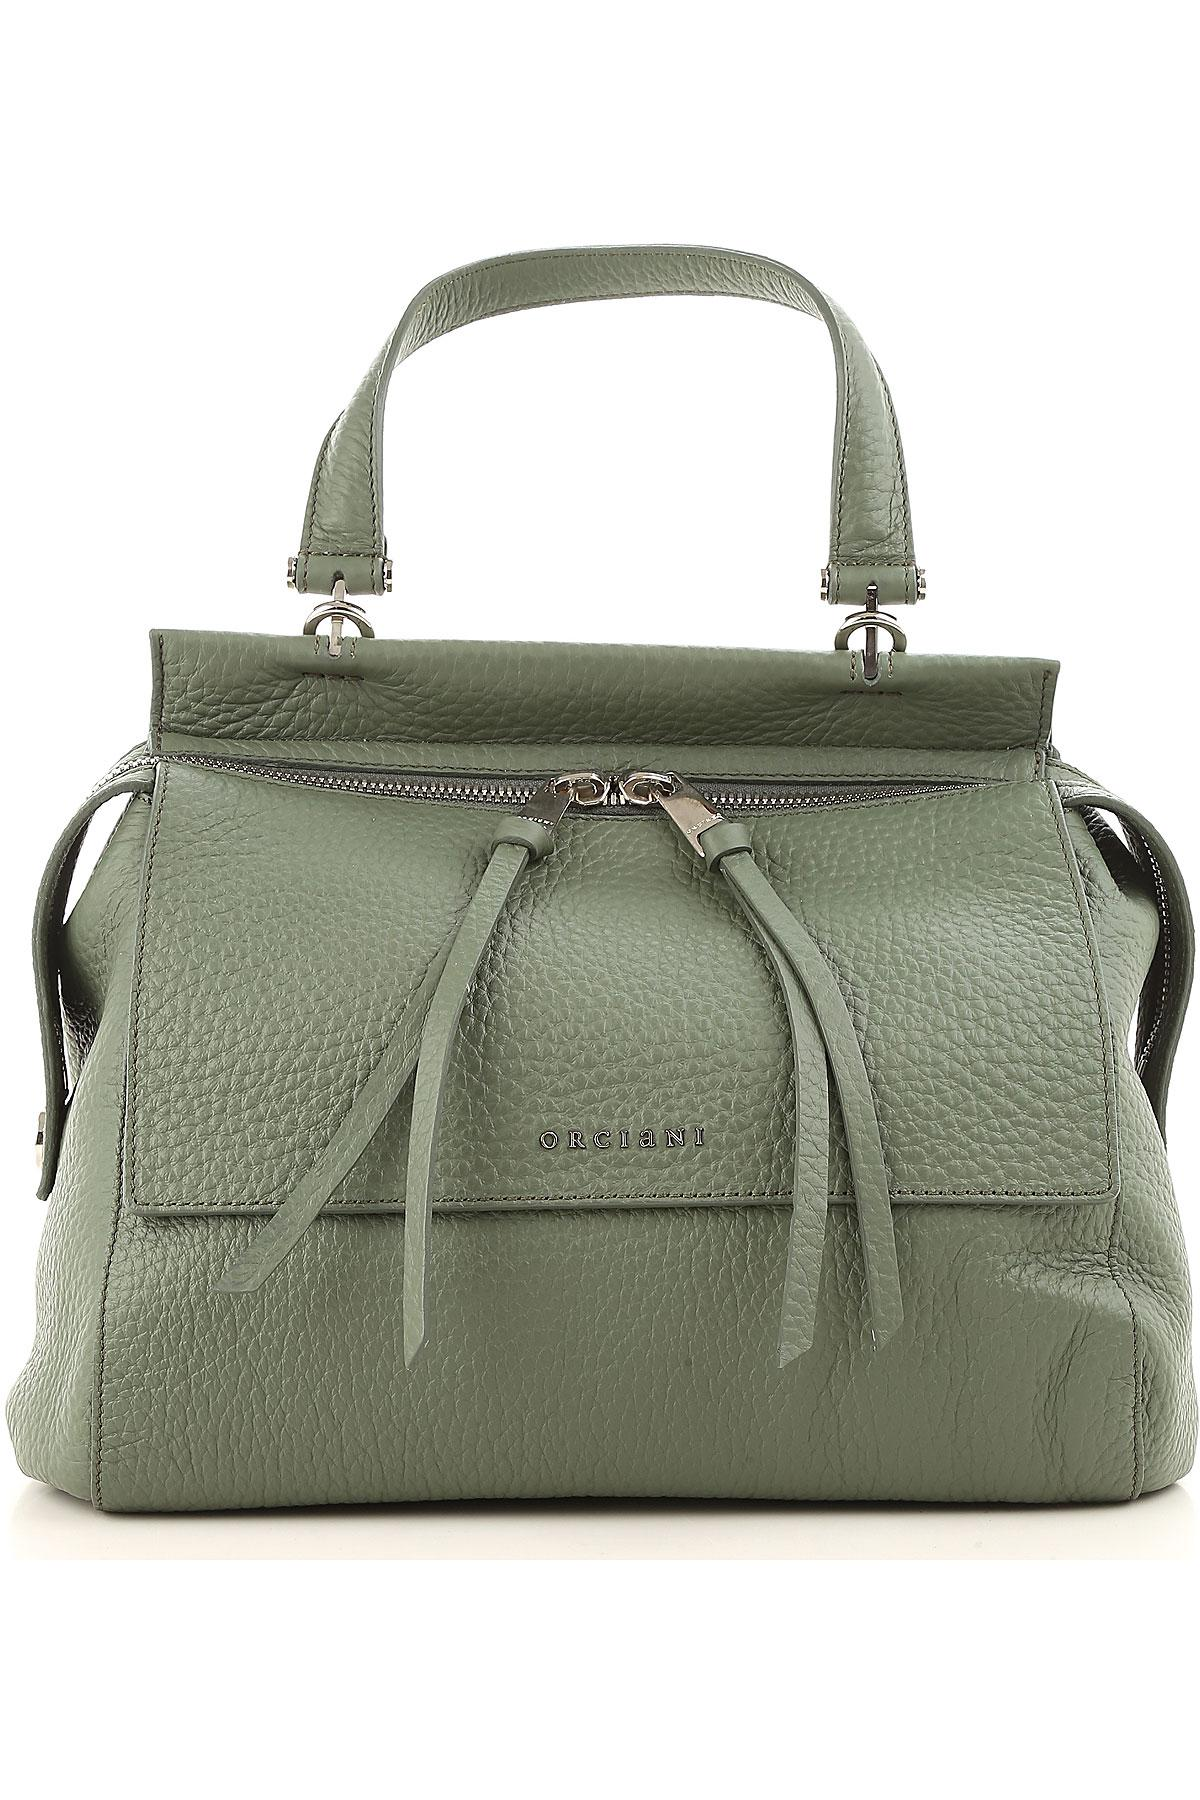 Lyst - Orciani Handbags in Green - Save 5% e1bea98796854